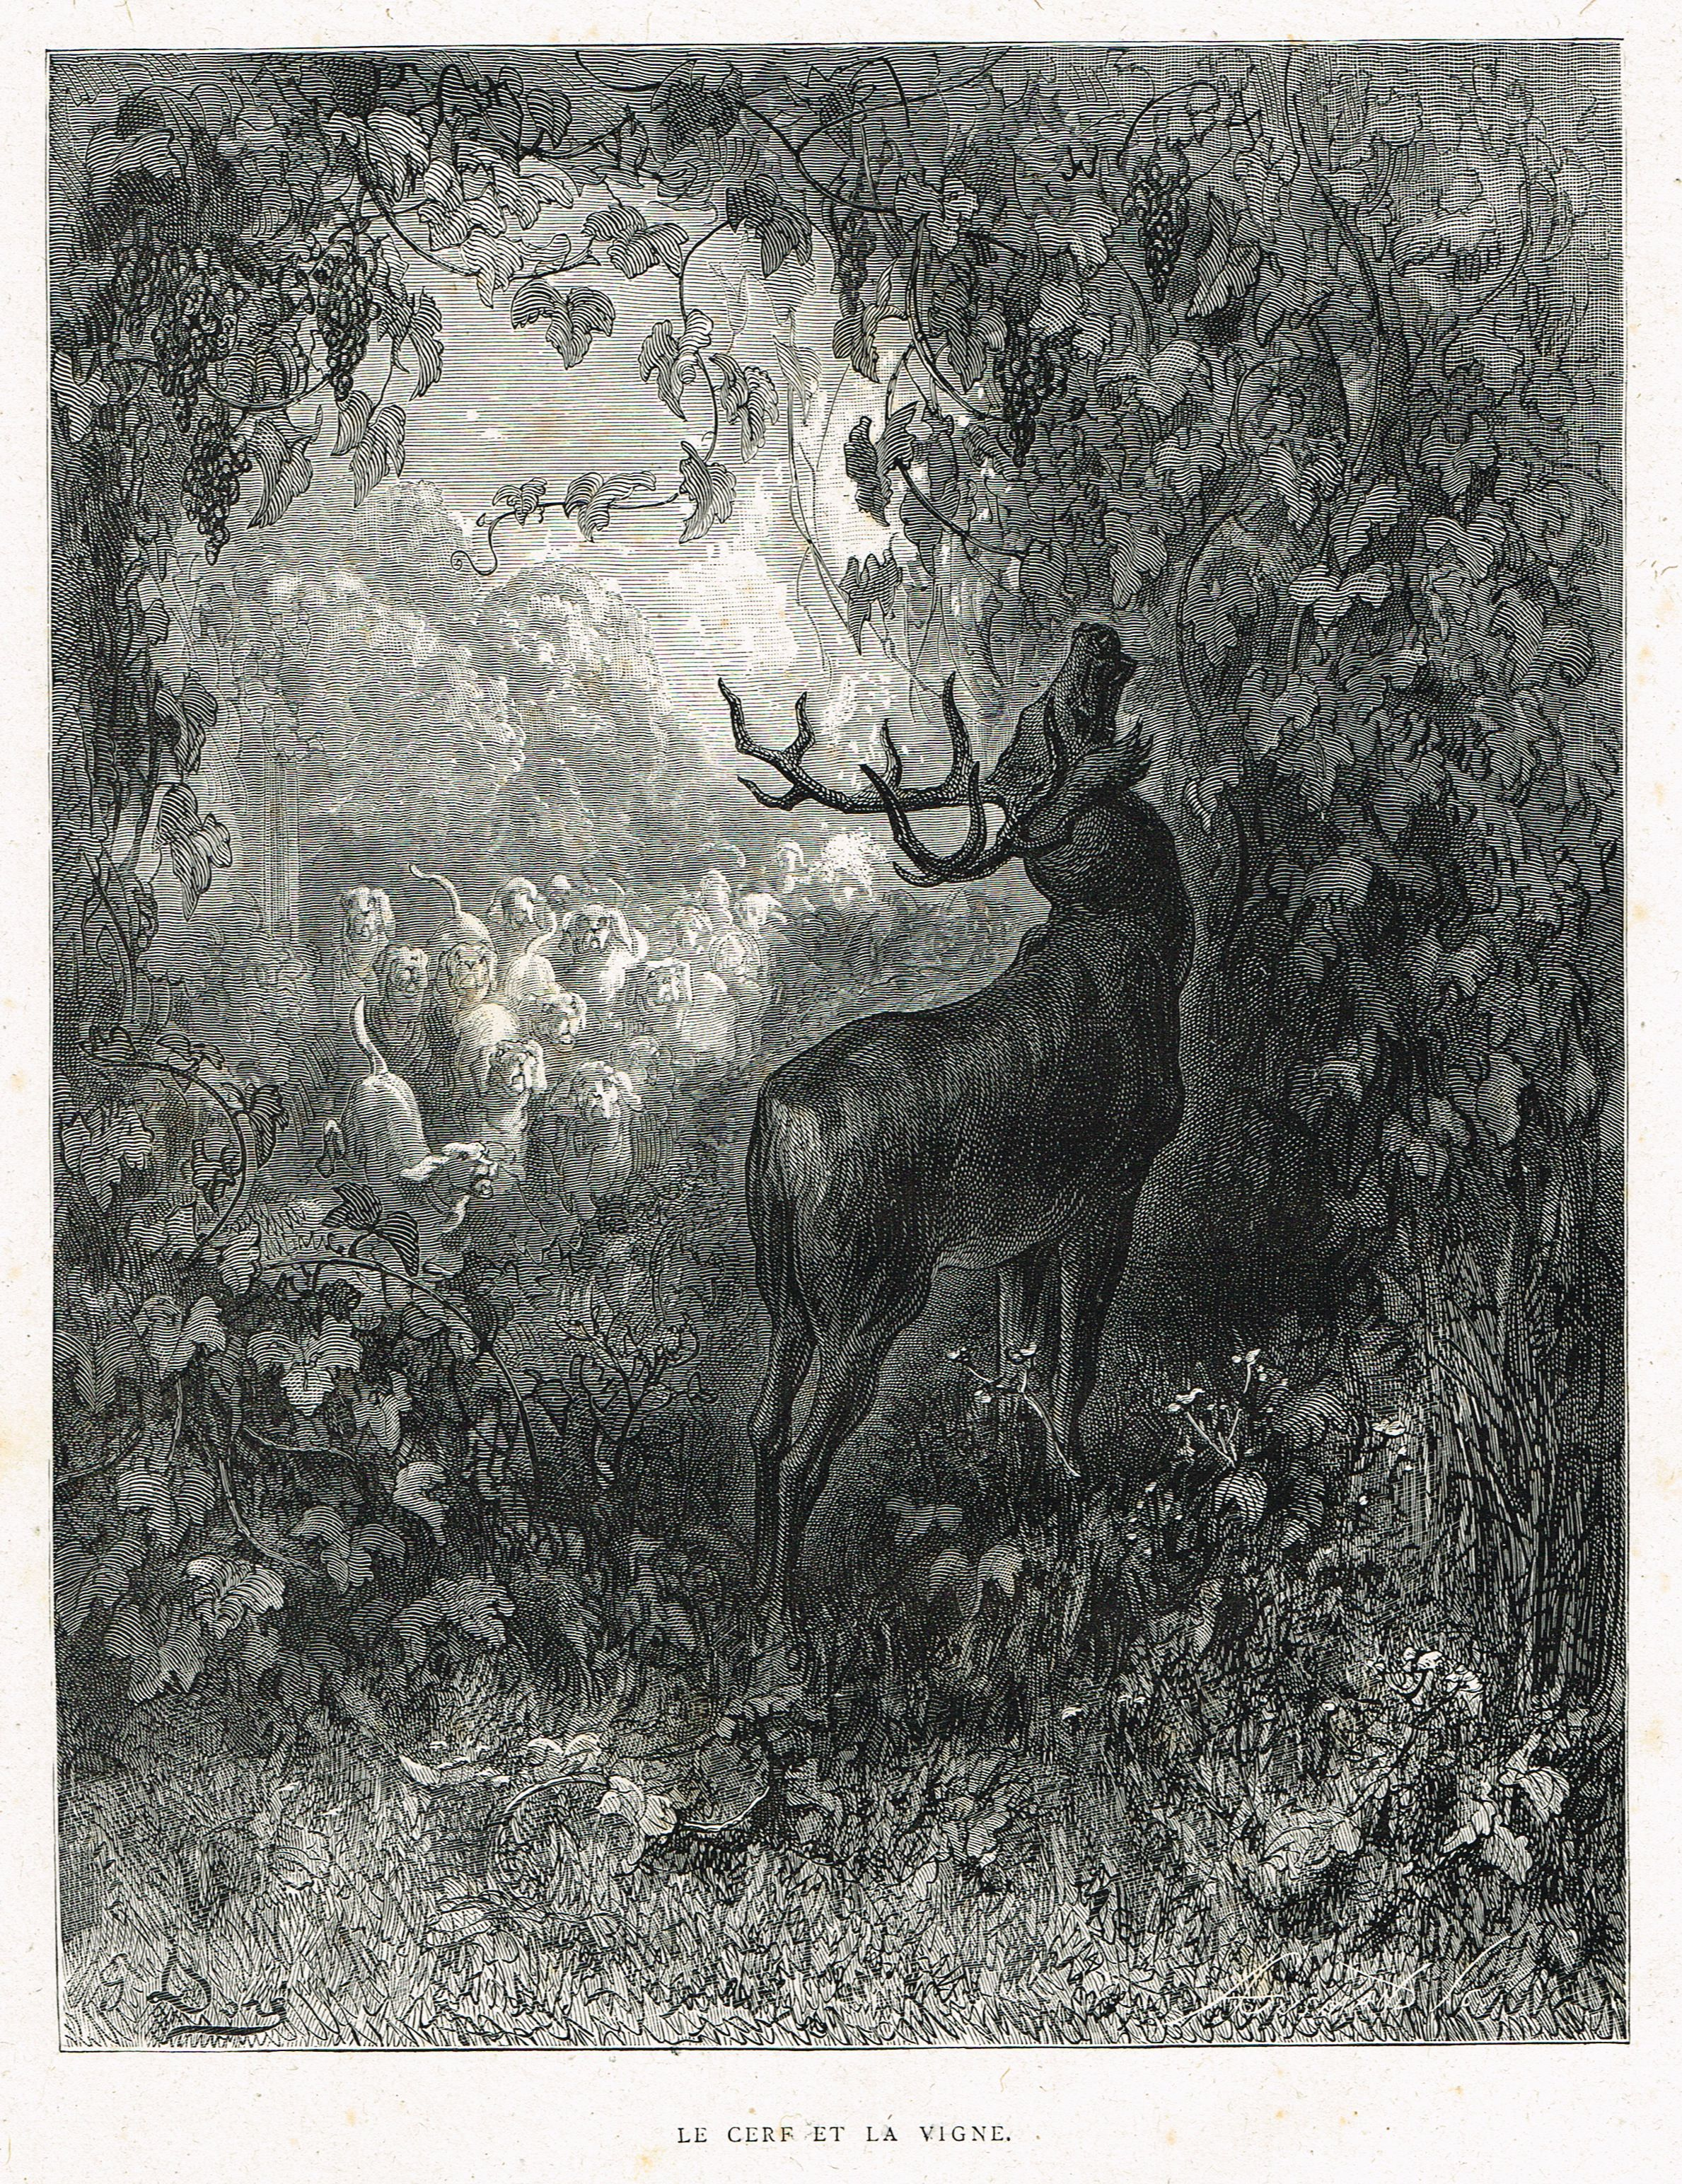 Le Cerf Et La Vigne Fable De Jean De La Fontaine Illustree Par Gustave Dore Mas Estampes Anciennes Mas Ant Painting Illustration Photo Art Nature Drawing